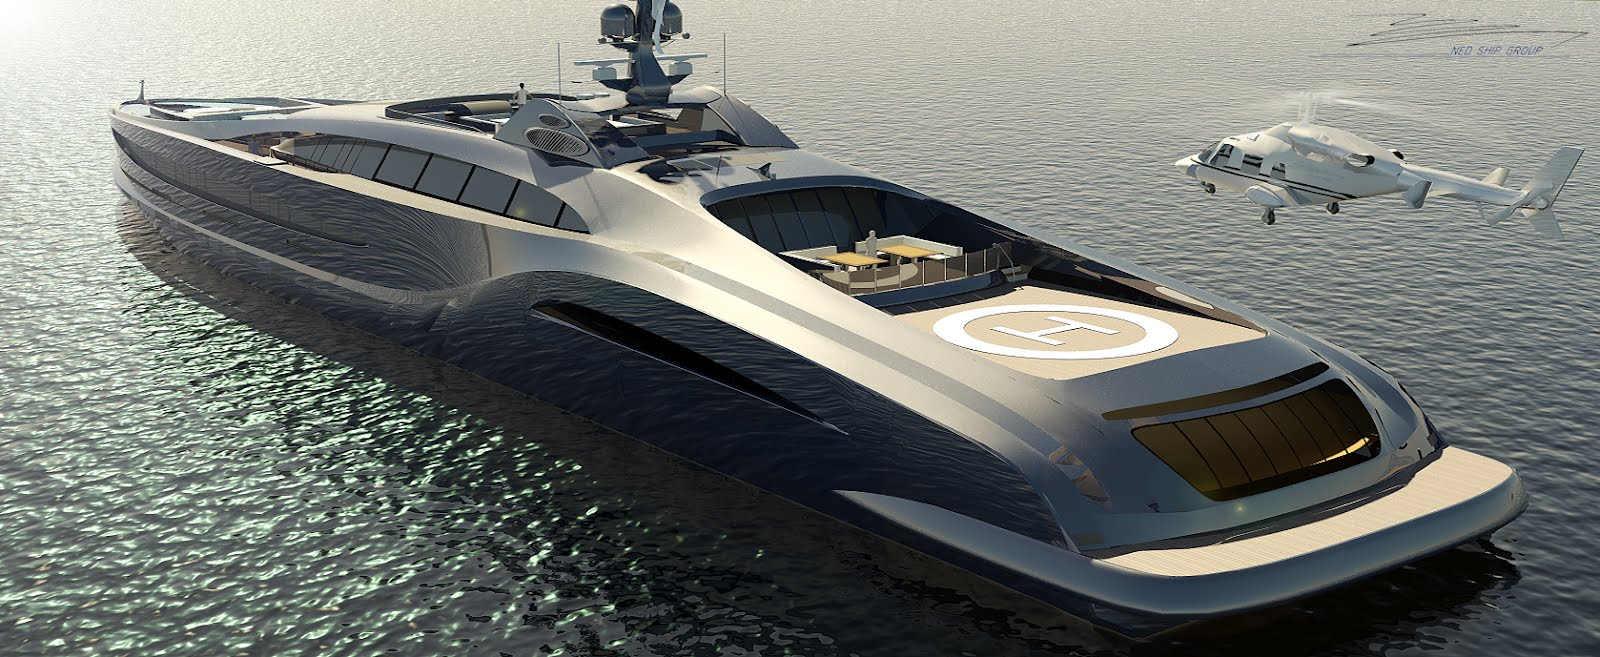 luxury helicopters black with 07 on Burning Man Nevada Flights Helicopter also 9 as well The New Oceanco 85 M Motor Yacht Sunrays as well Burning Man Airport Helicopter Rides 2016 9 moreover Agustawestland Aw139 Pininfarina Edition.